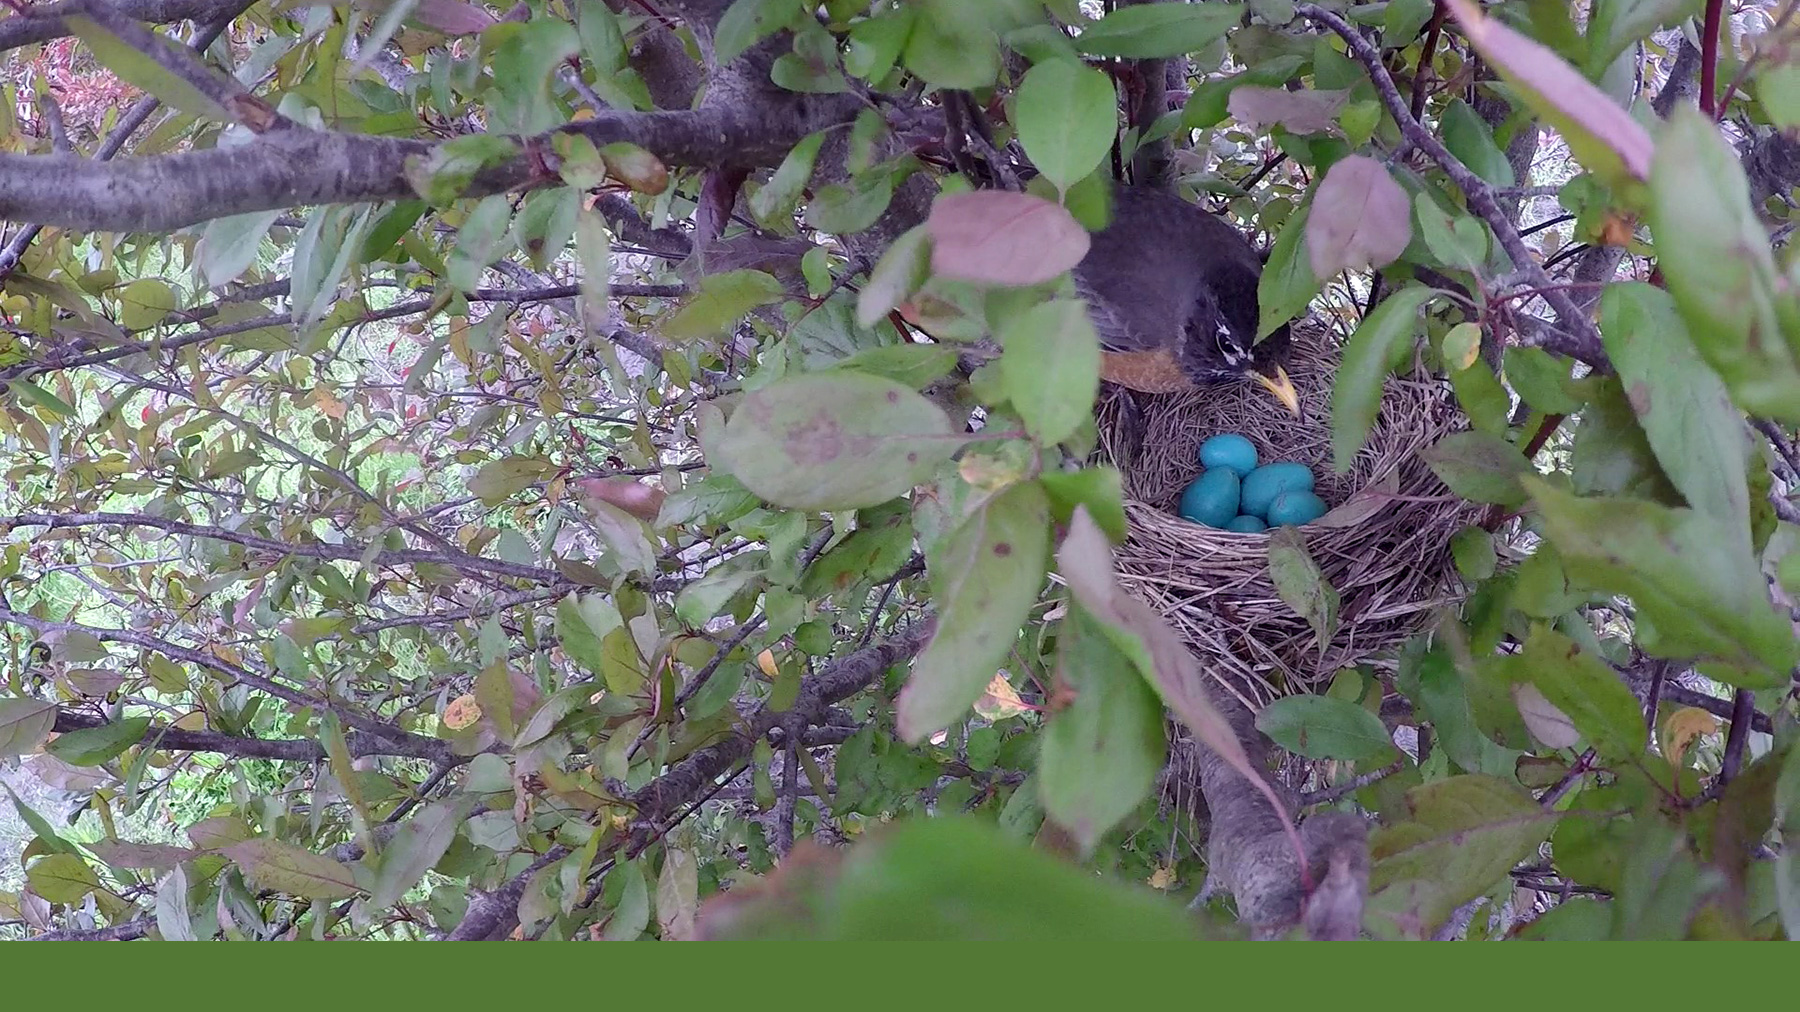 Robin stands over its clutch of eggs in the crook of a tree. Photo courtesy Mark E. Hauber